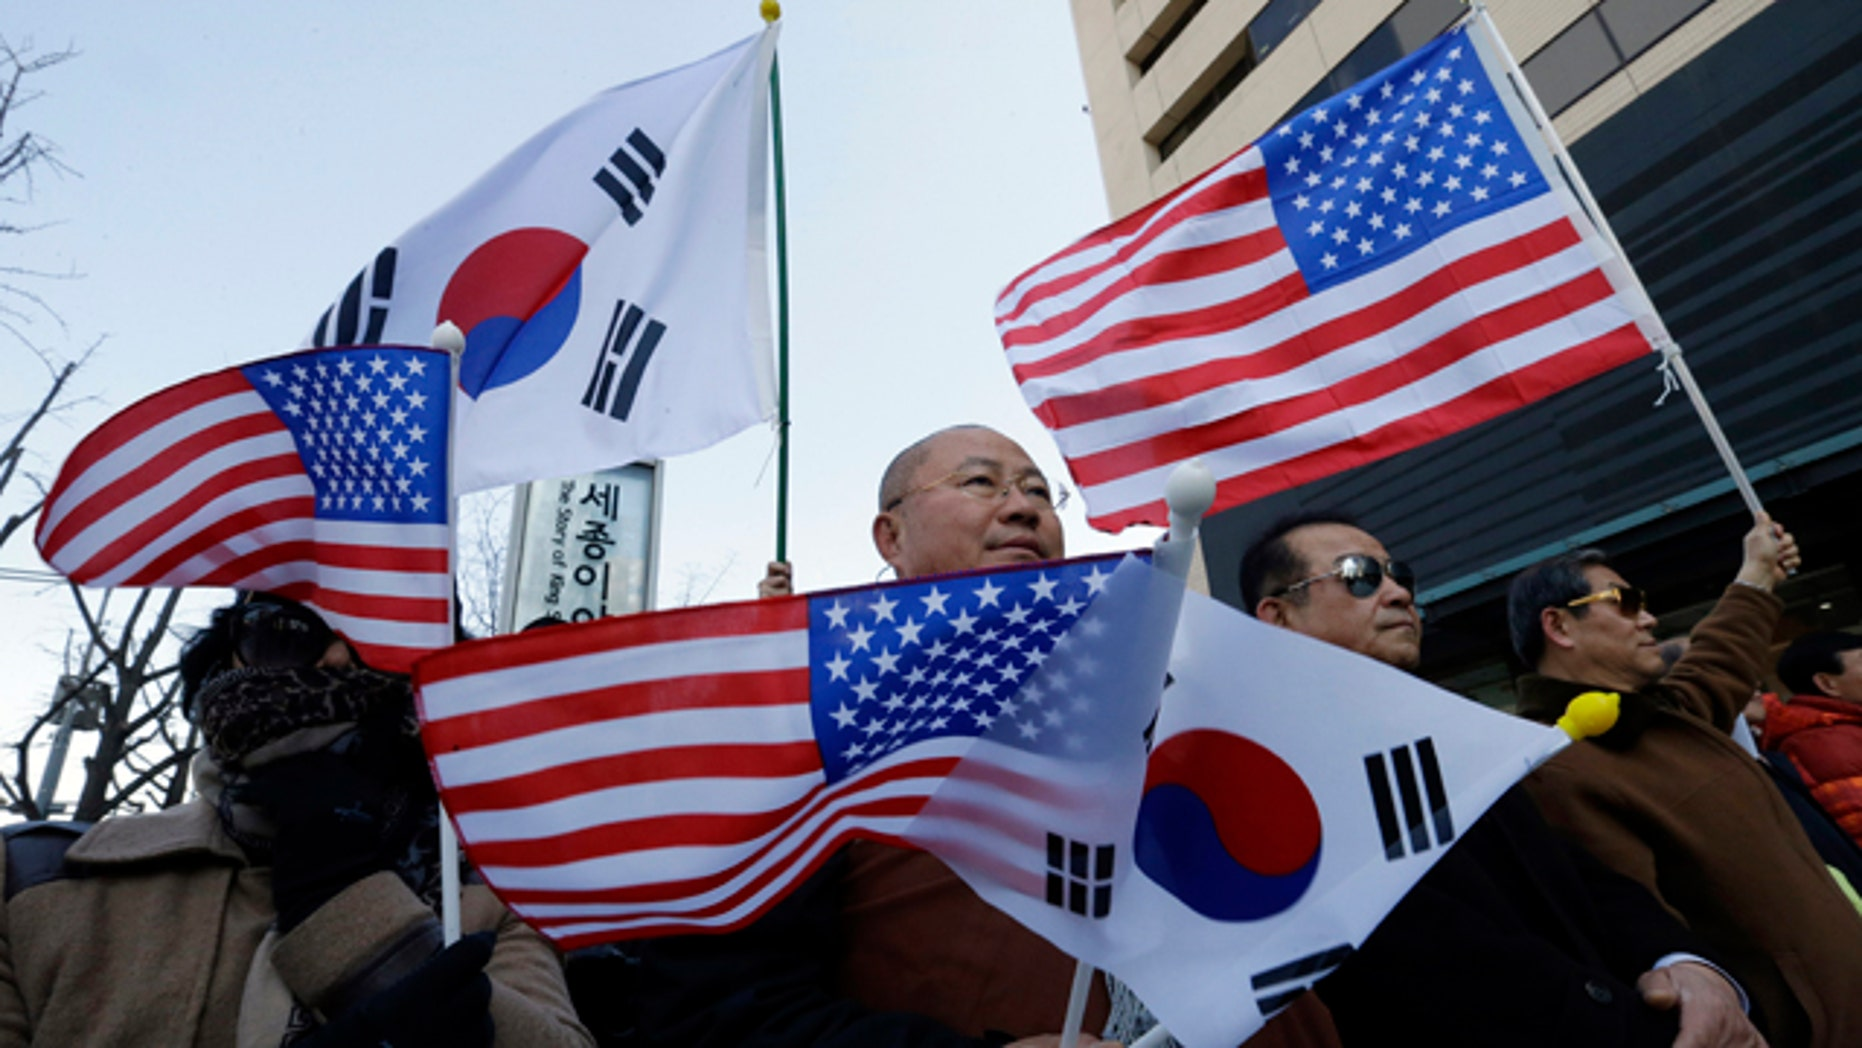 March 13, 2015: South Korean conservative activists with the flags of South Korean and the United States stage a rally denouncing the attack on U.S. Ambassador to South Korea Mark Lippert. South Korean police said Friday that an anti-U.S. arrested last week for allegedly stabbing Lippert had intended to kill the envoy to highlight his protest against ongoing U.S.-South Korean military drills. (Ahn Young-joon)